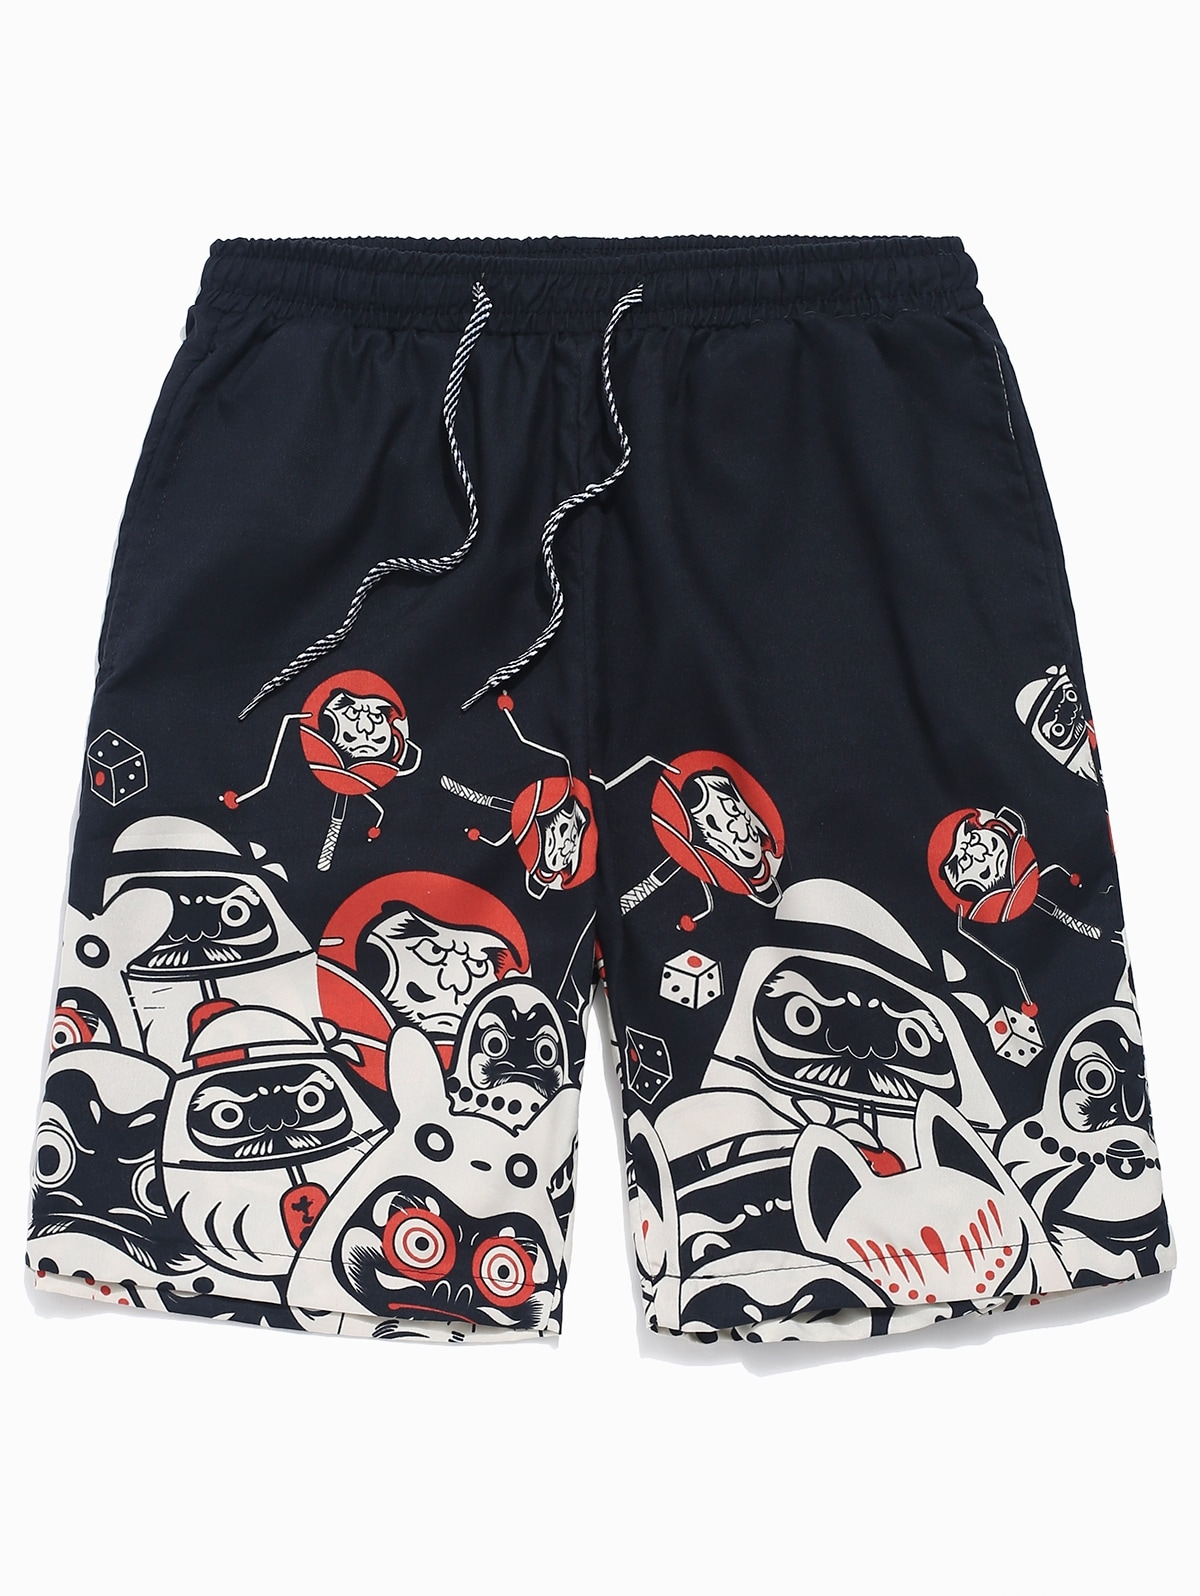 Cartoon Print Drawstring Beach Shorts